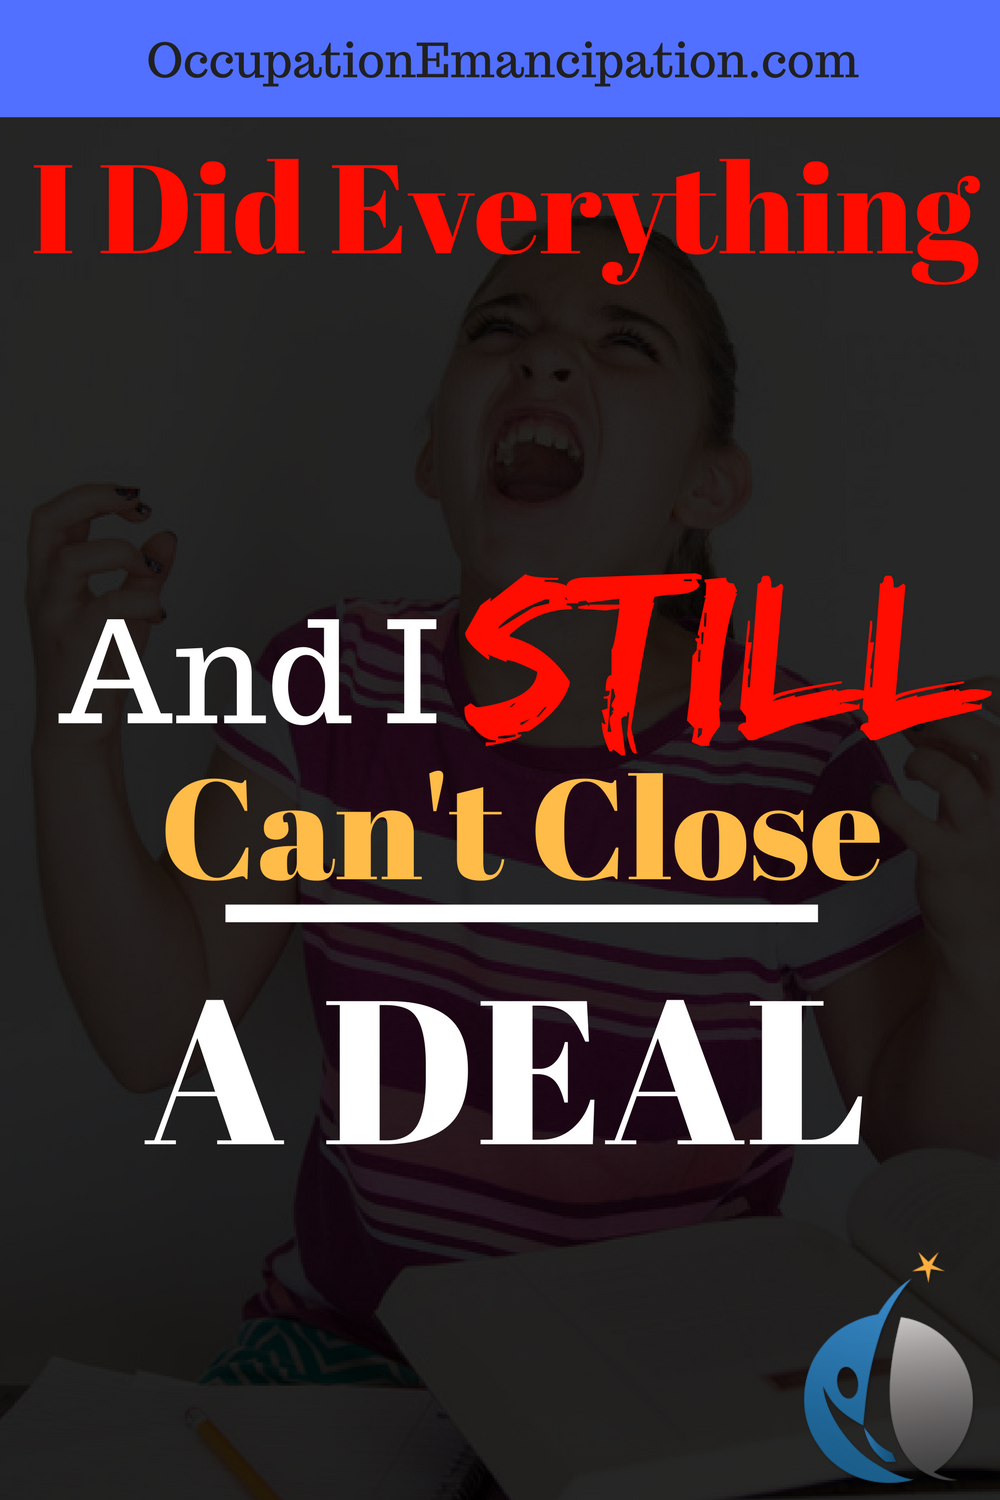 i did everything and still can't close a deal pinterest